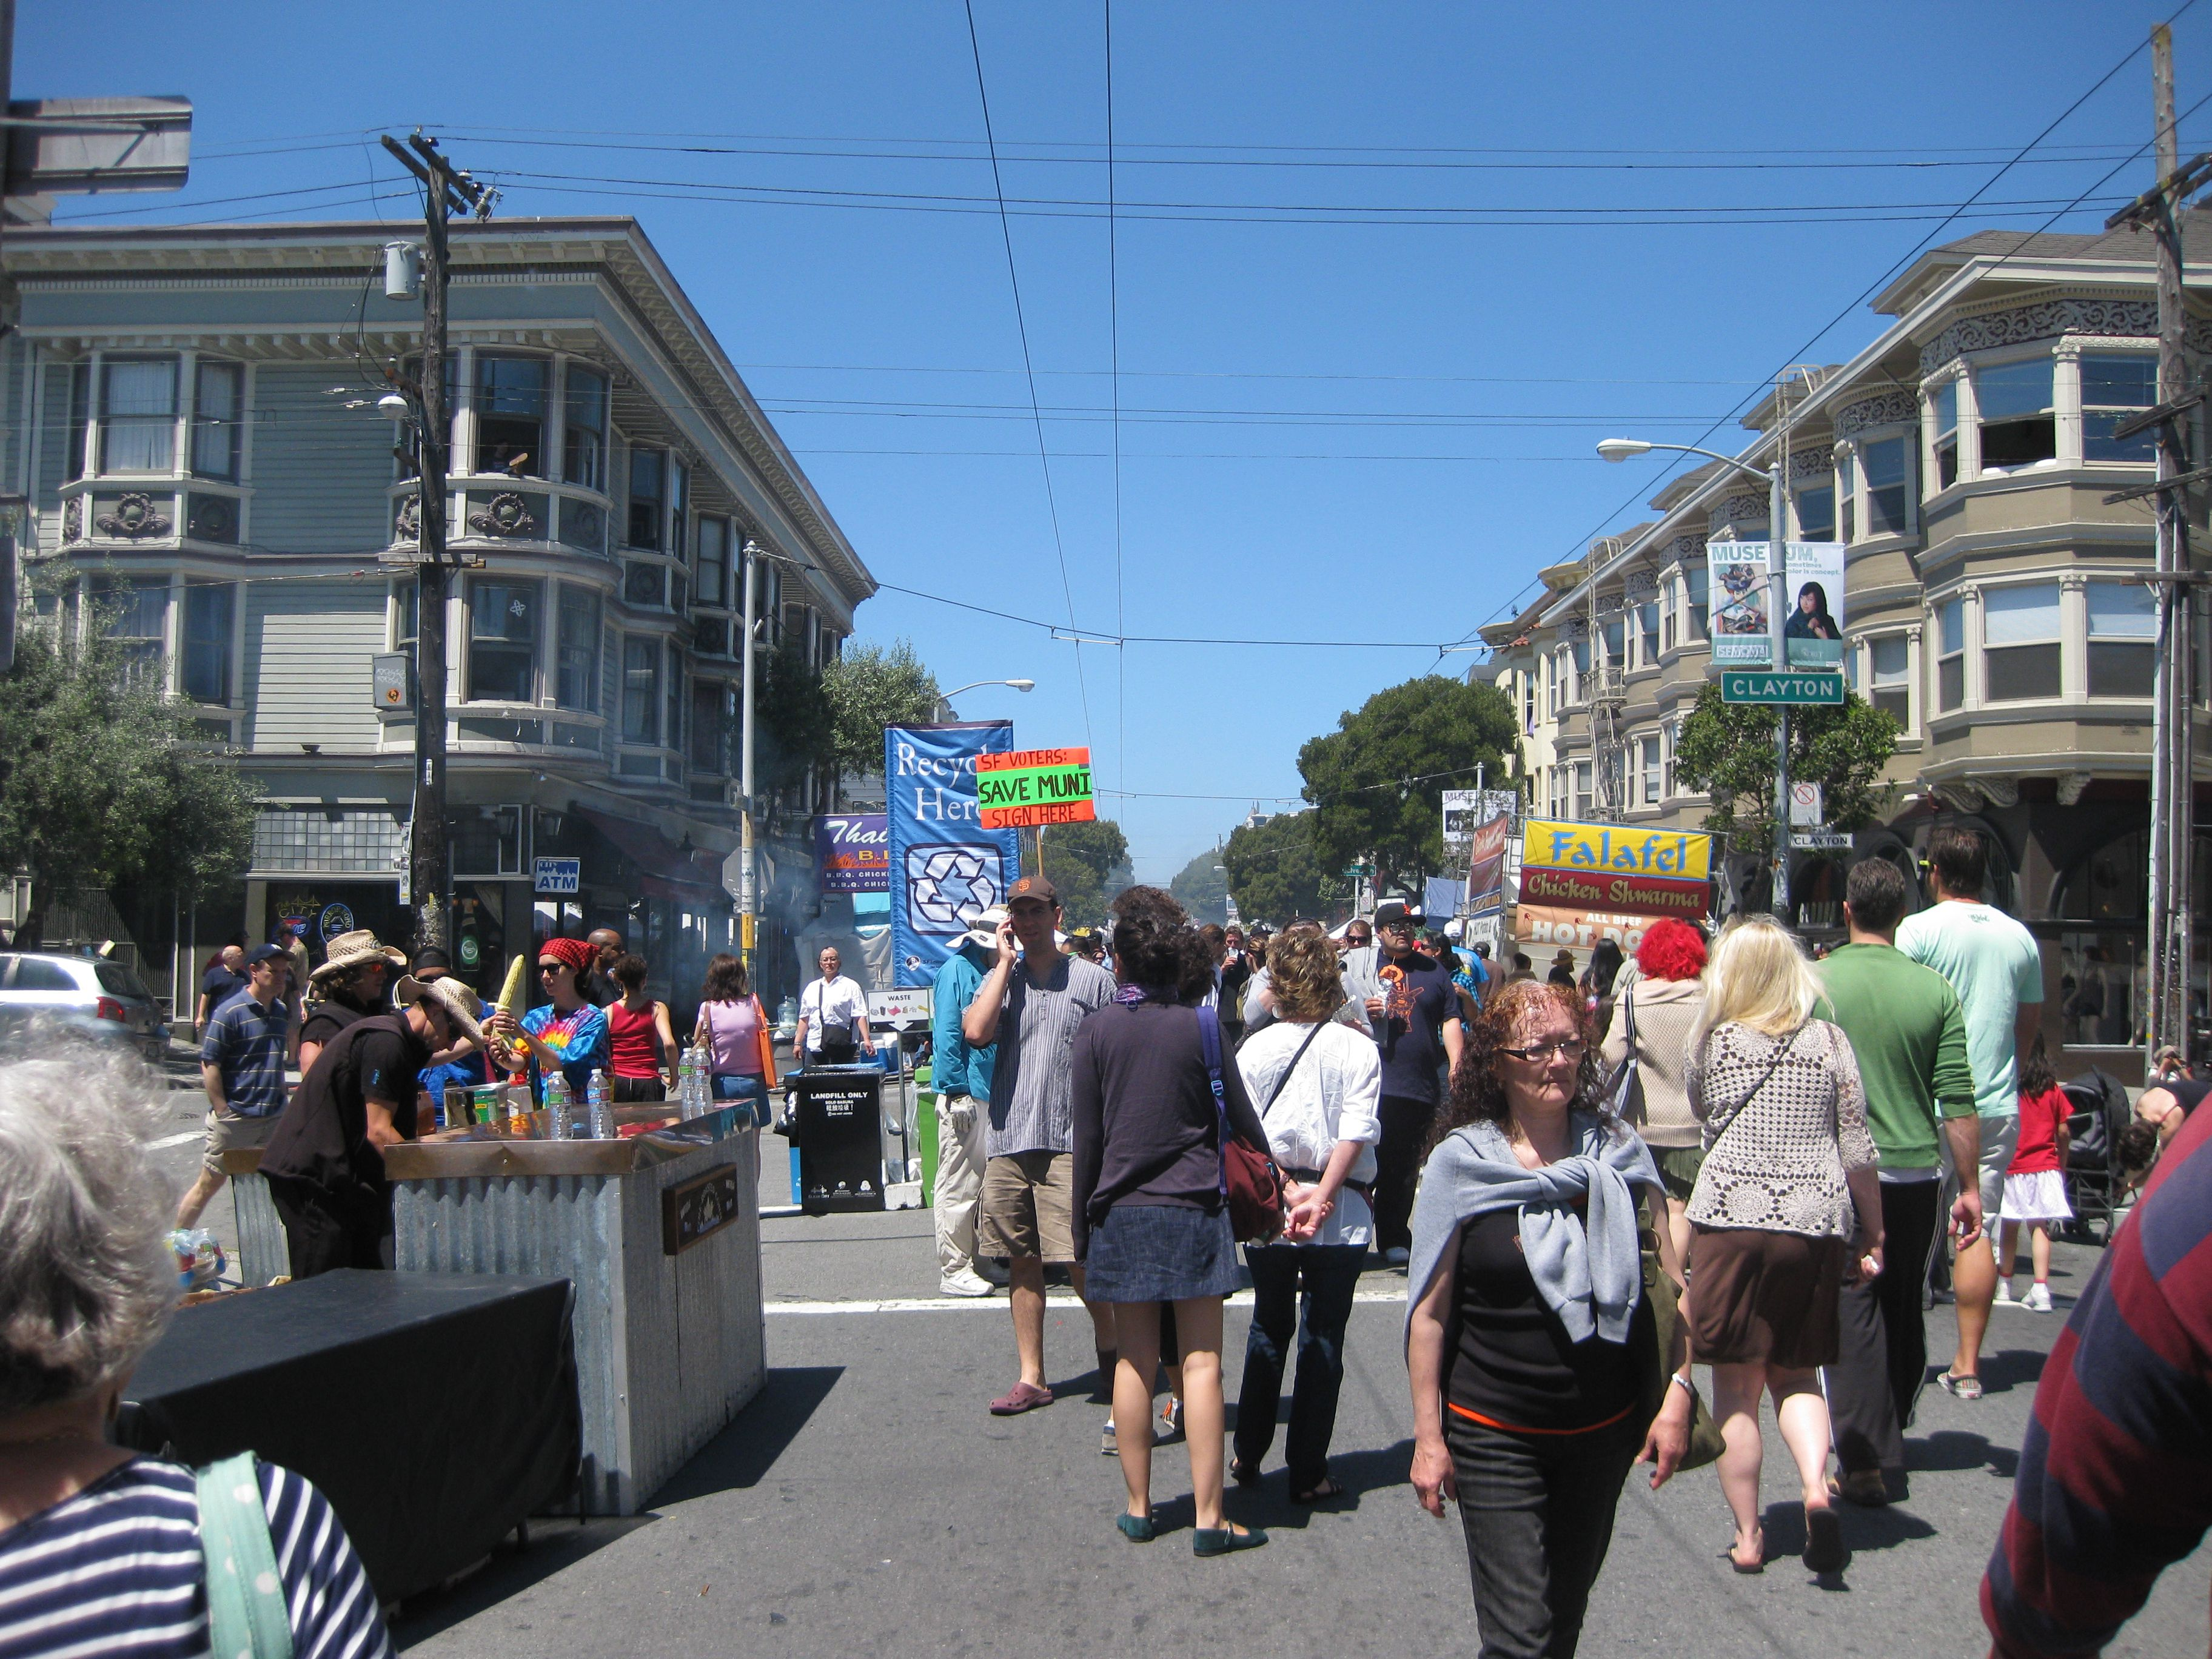 Visitors at the annual Haight-Ashbury festival